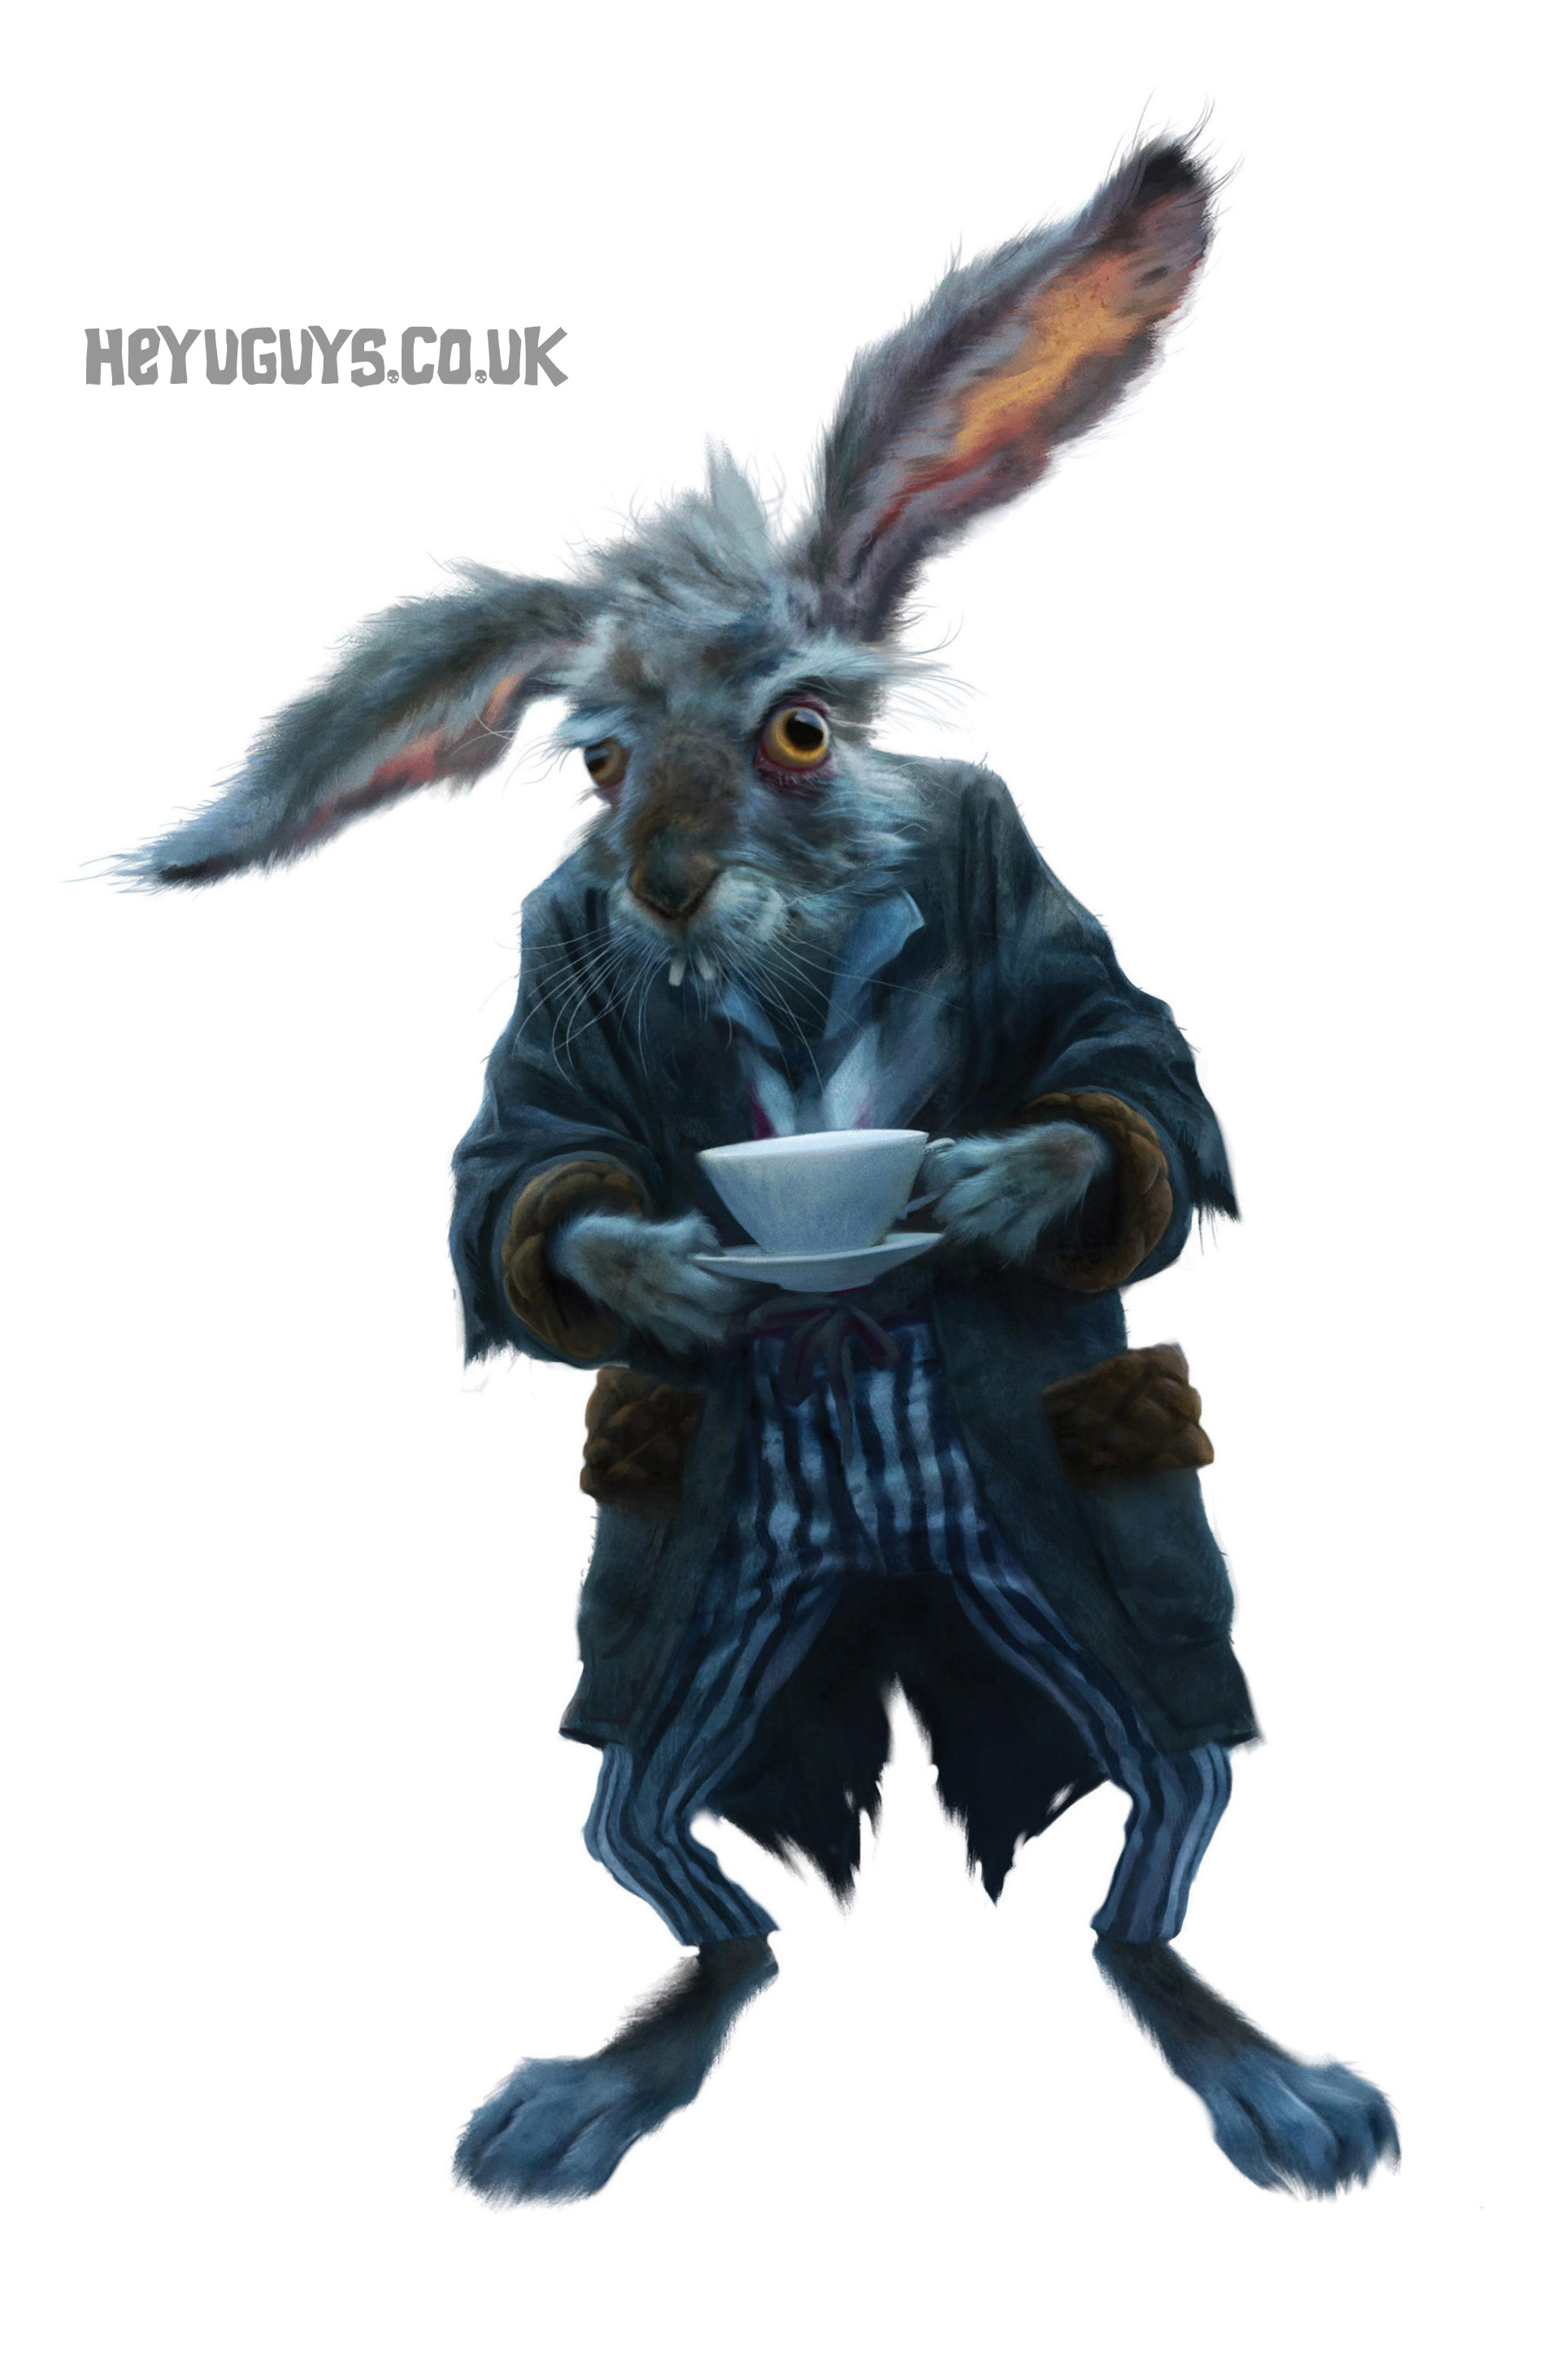 alice in wonderland - march hare concept art